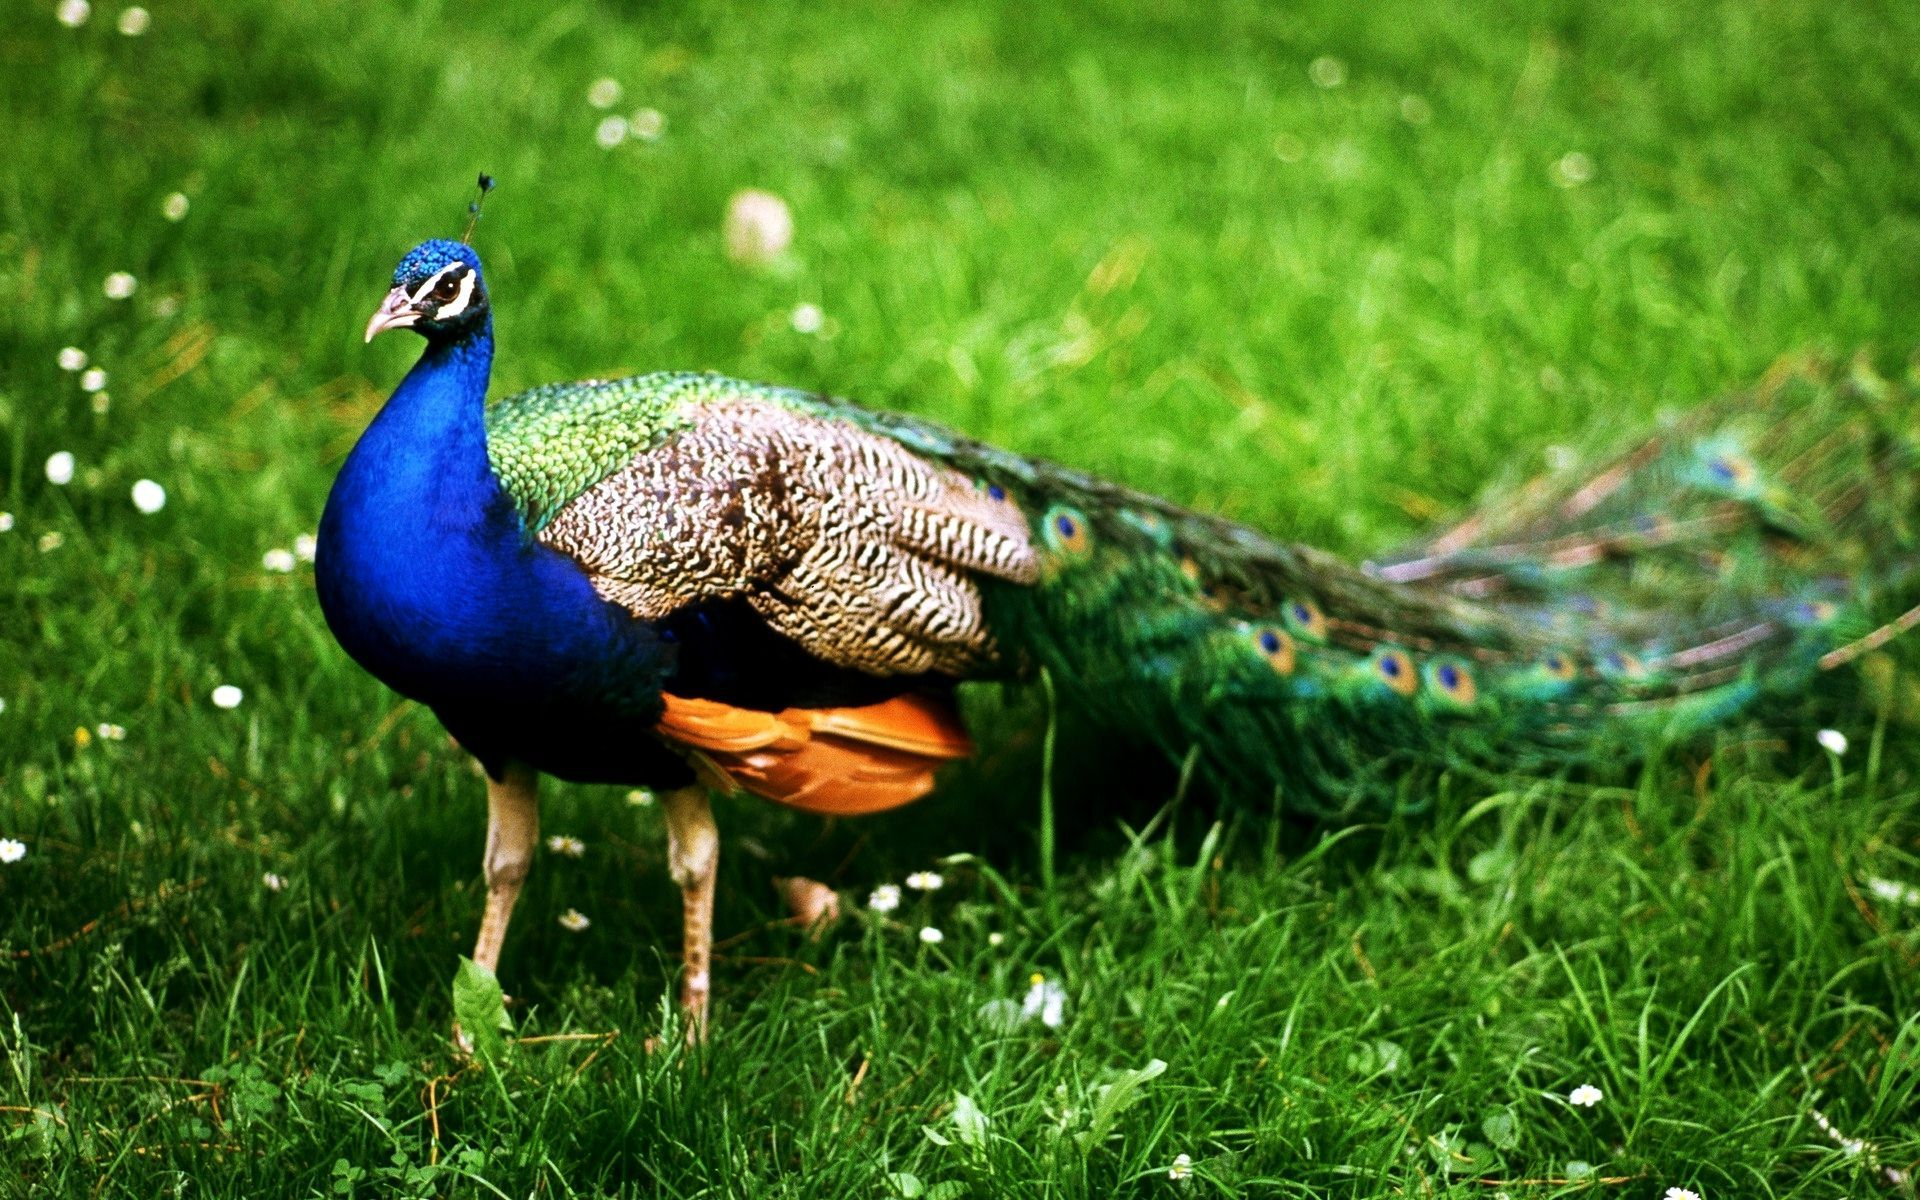 Beautiful Wallpapers Google Search Hd Nature Wallpapers Peacock Images Animal Wallpaper